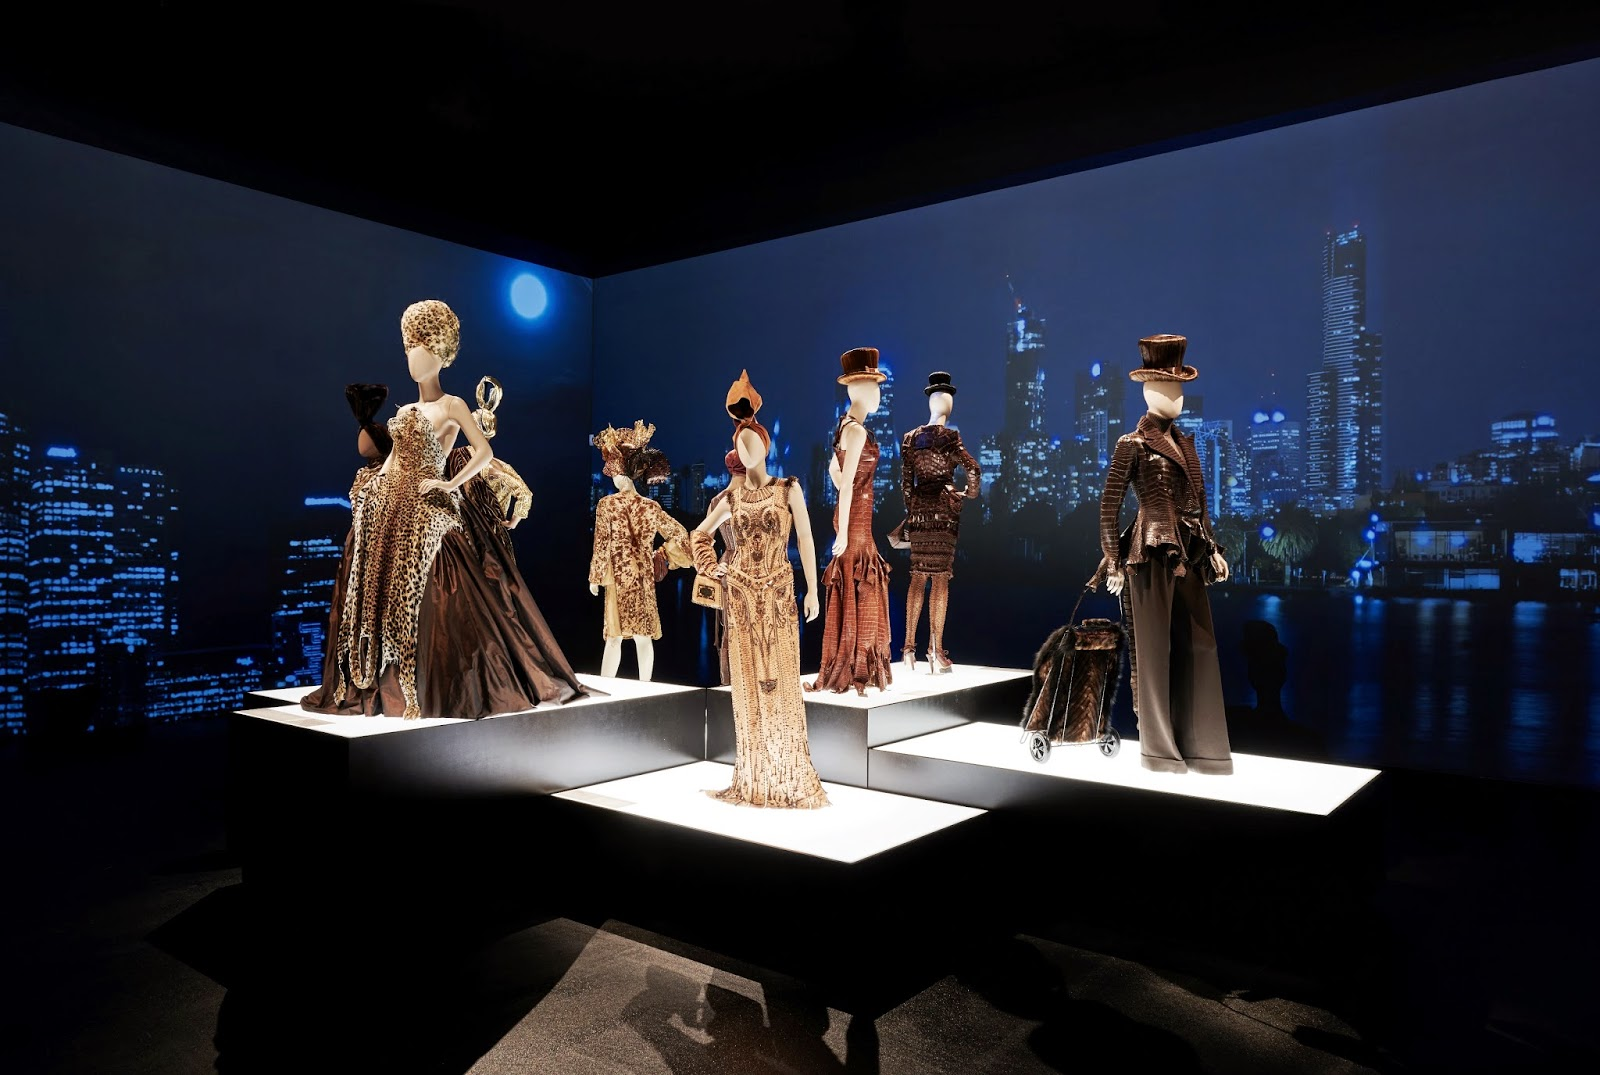 The Fashion World of Jean Paul Gaultier, installation image provided by NGV